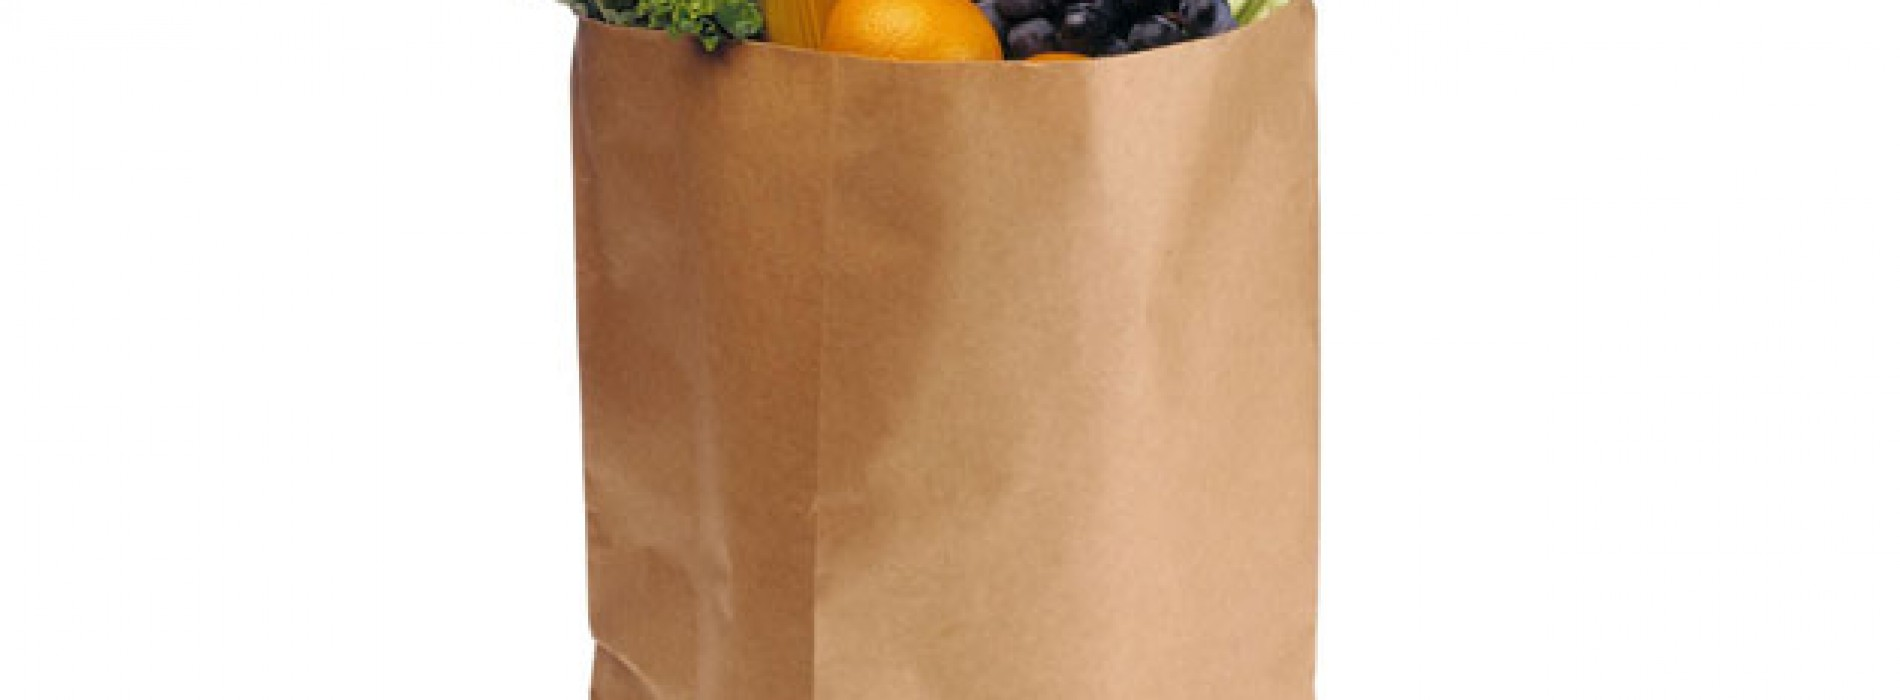 Healthy Habits: Outsmart the Grocery Monster